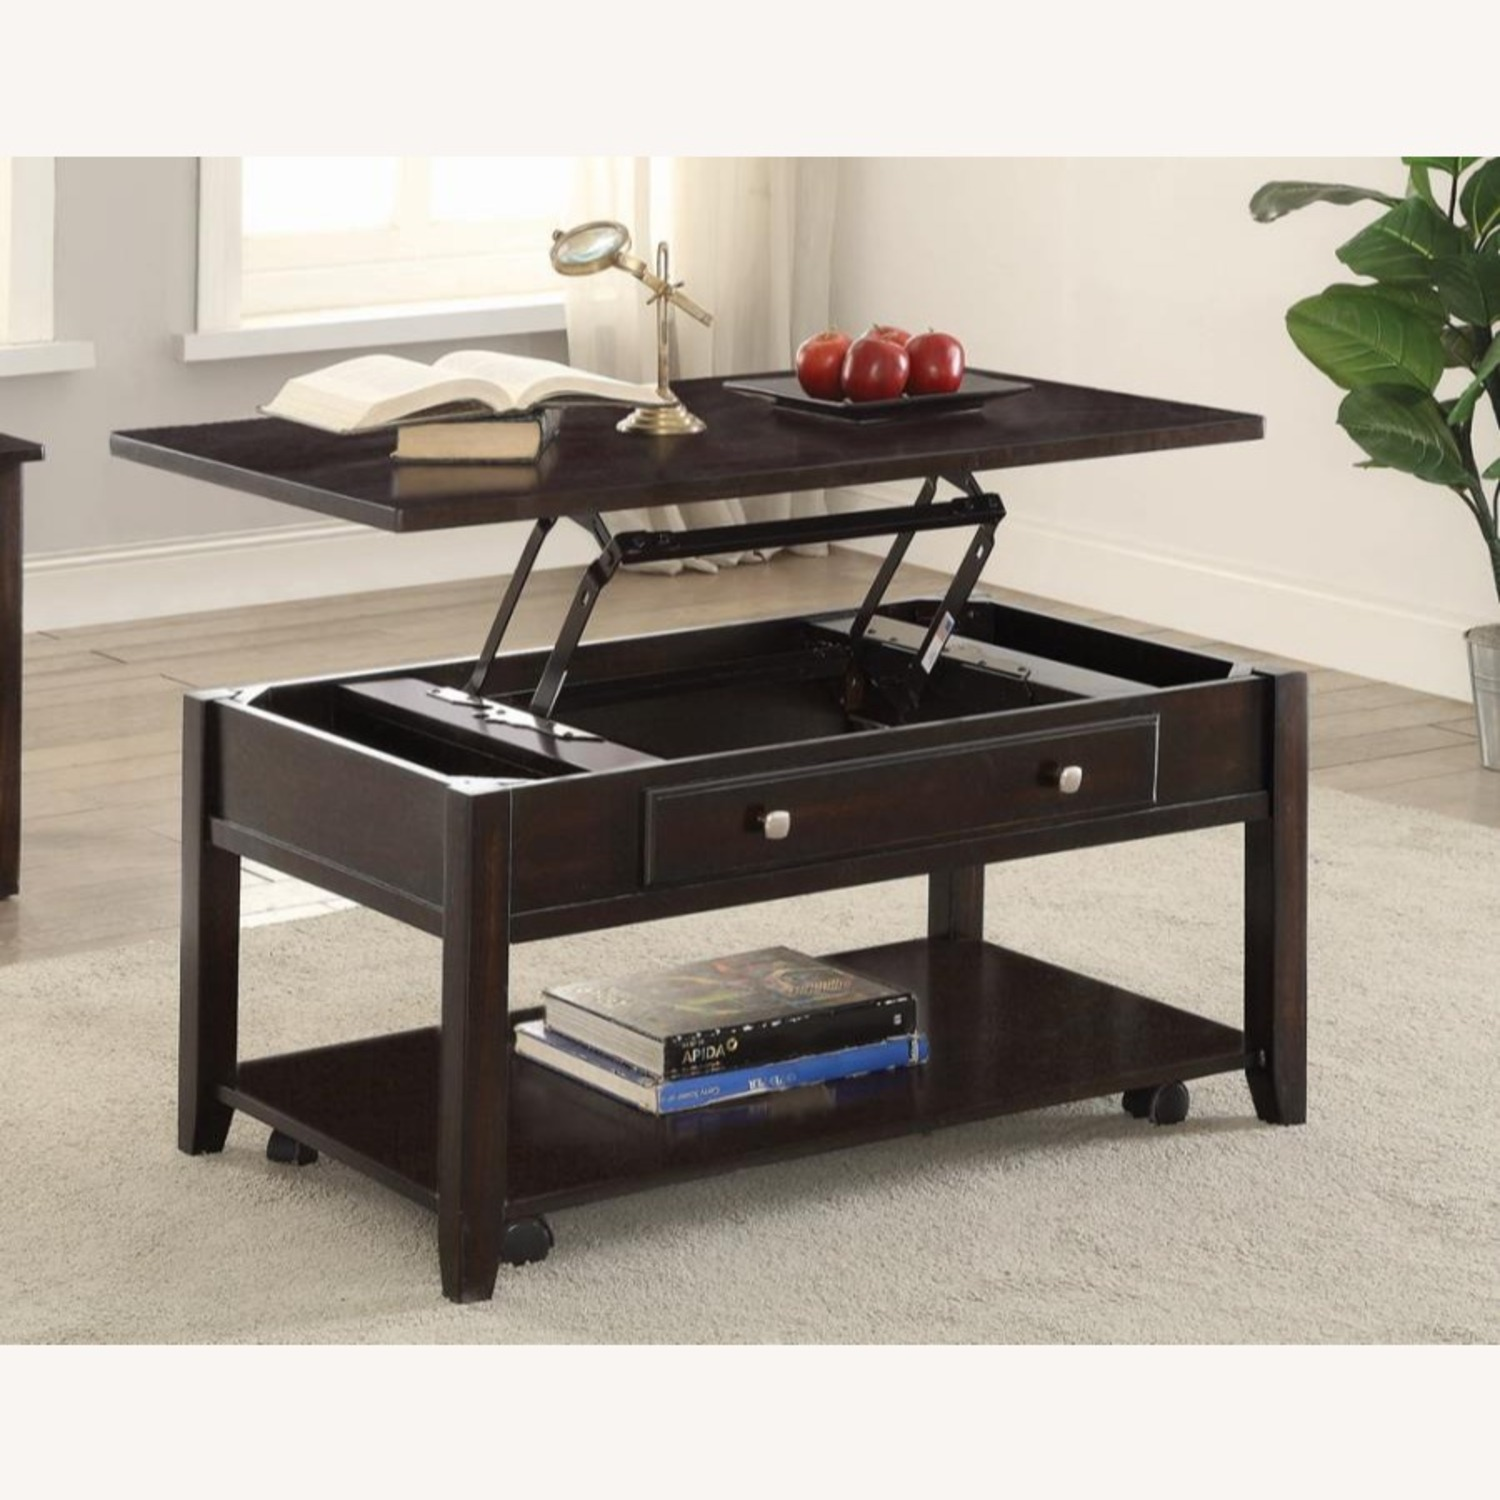 Lift Top Coffee Table In Walnut Finish W/ Shelves - image-3